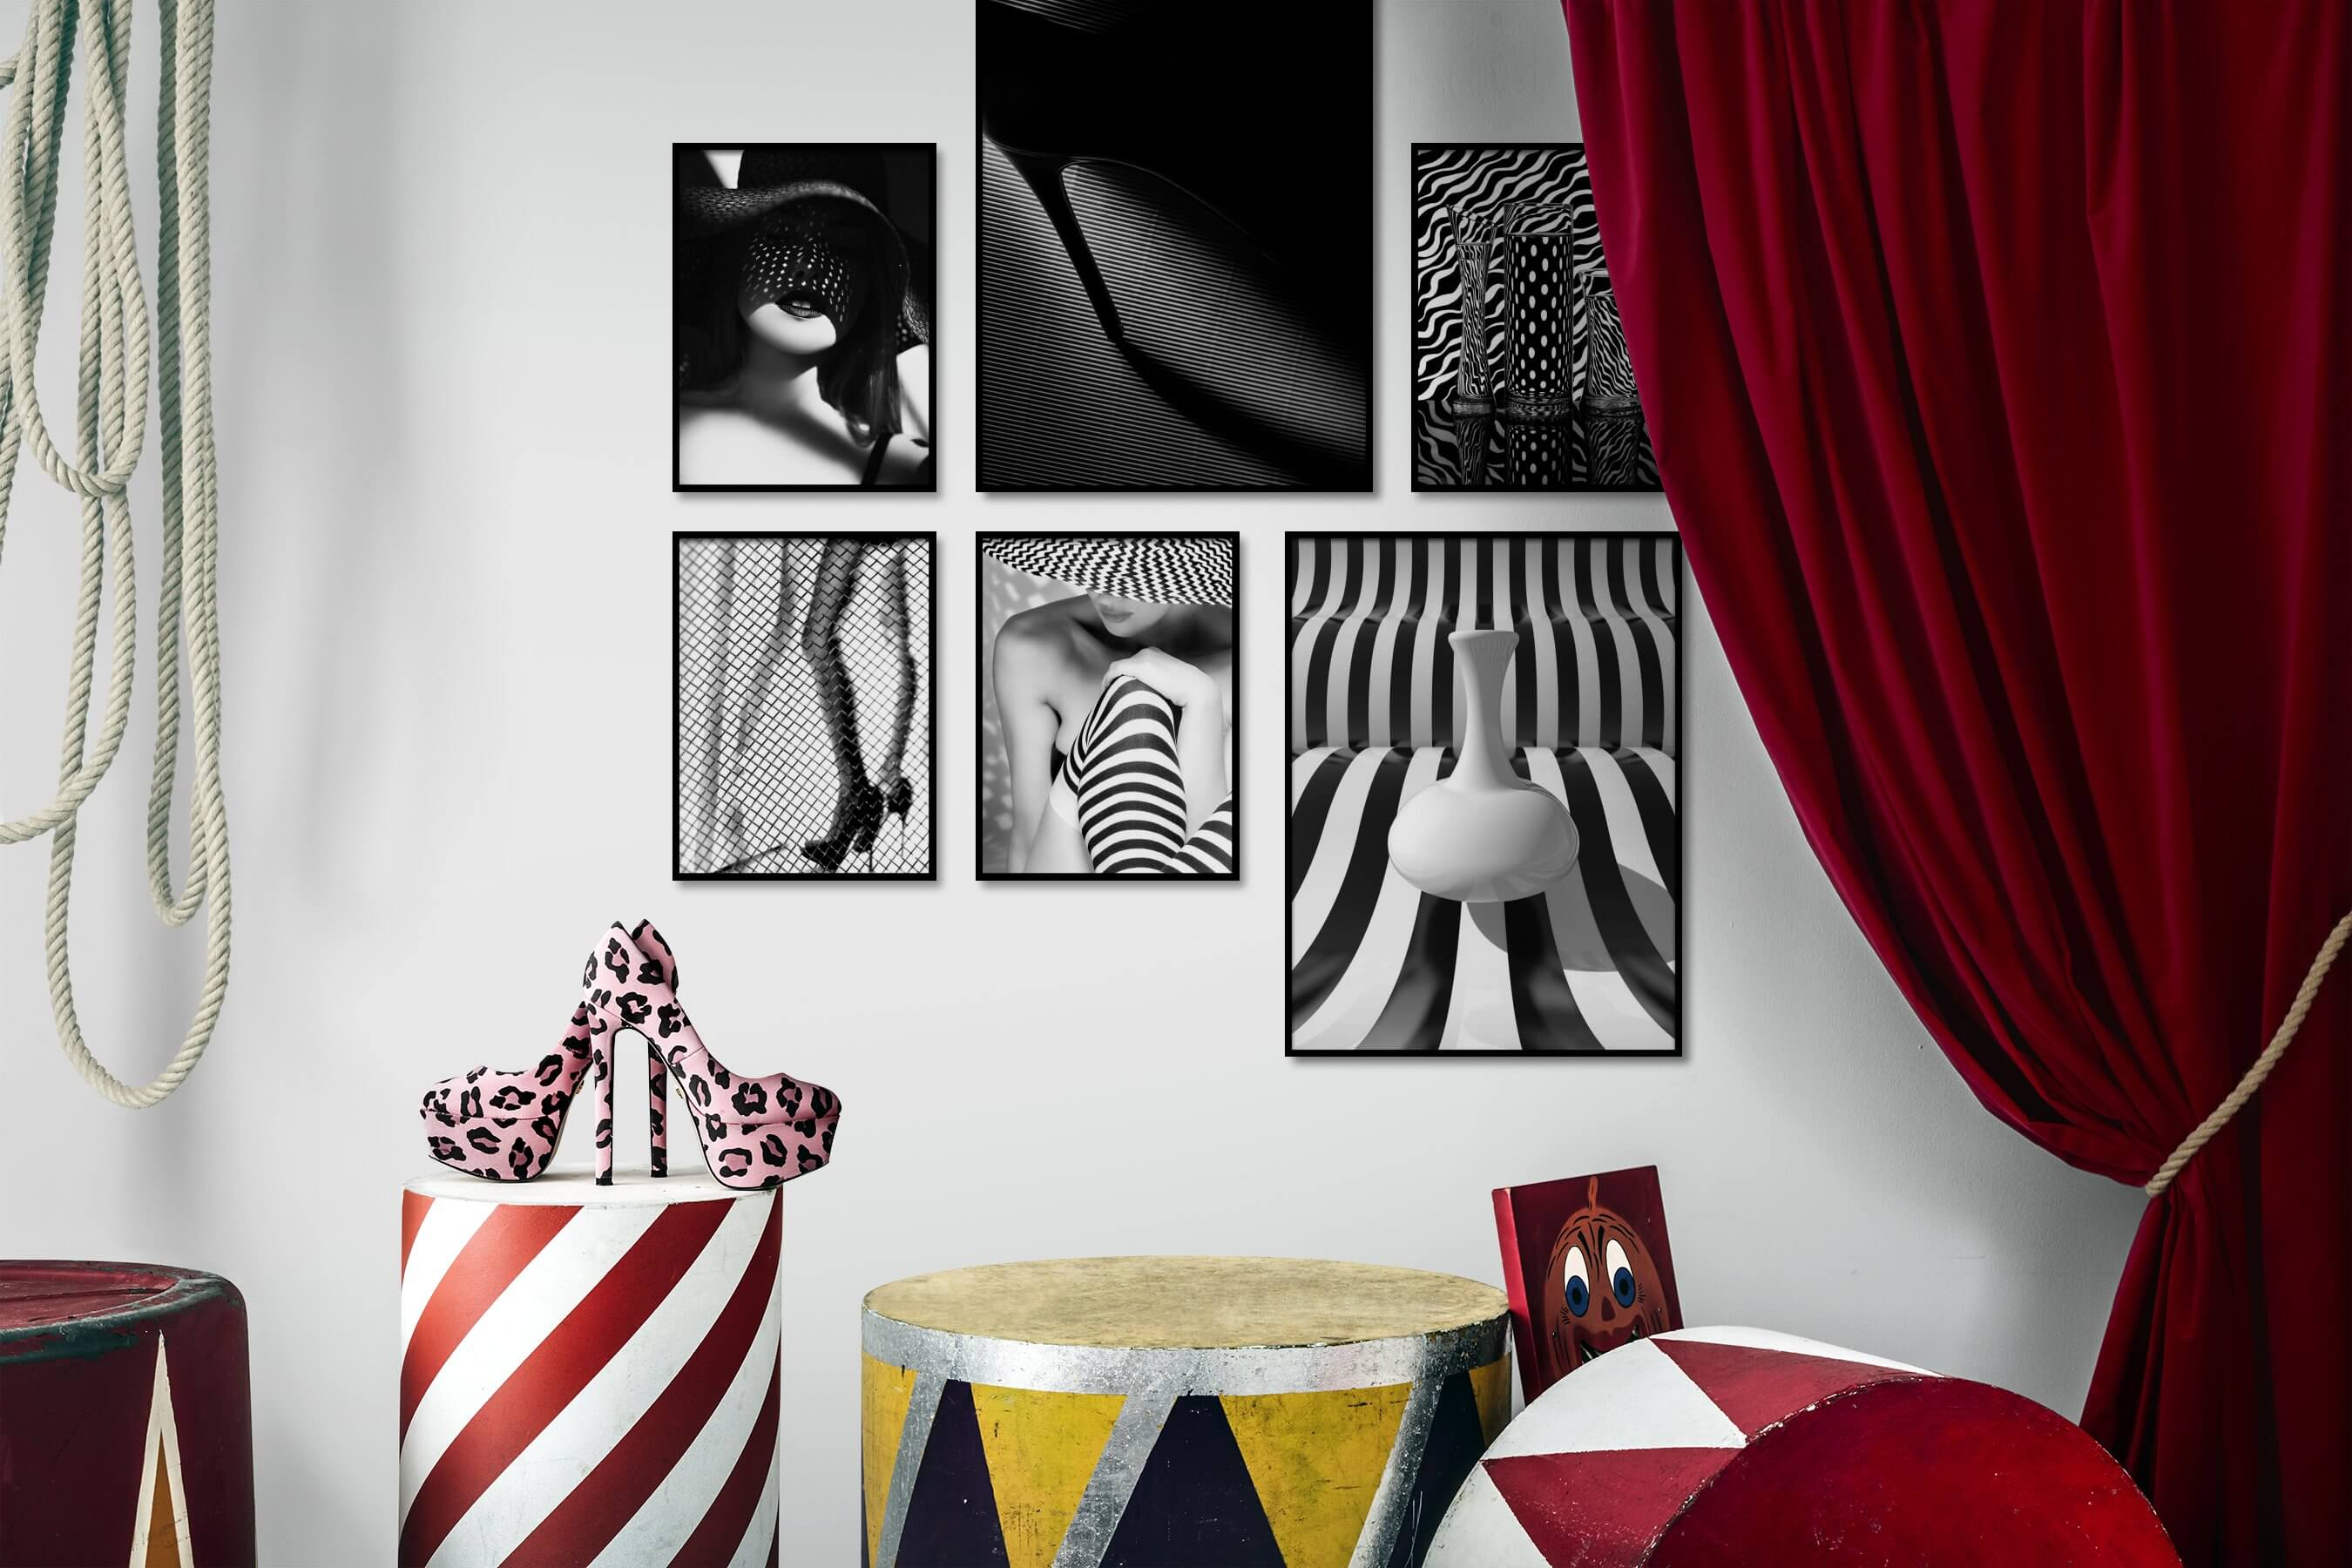 Gallery wall idea with six framed pictures arranged on a wall depicting Fashion & Beauty, Black & White, For the Moderate, Vintage, Dark Tones, and For the Maximalist